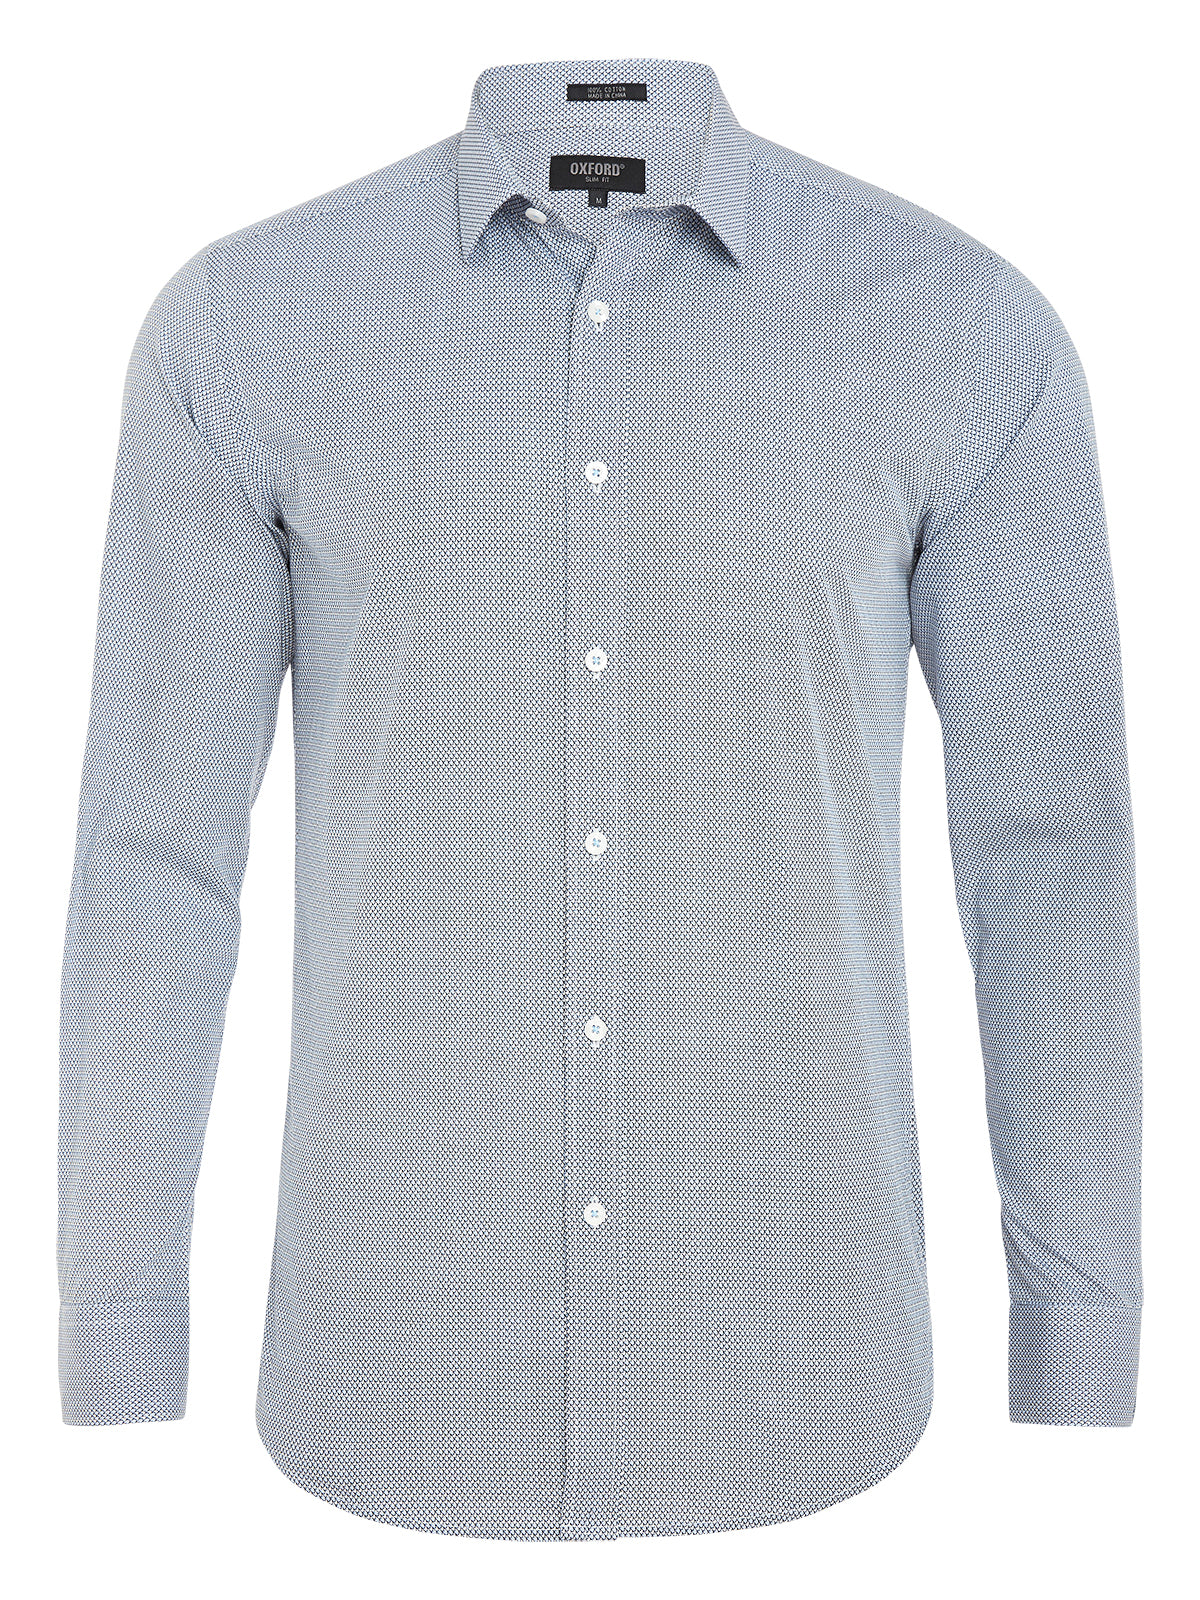 KENTON PRINTED SHIRT BLUE